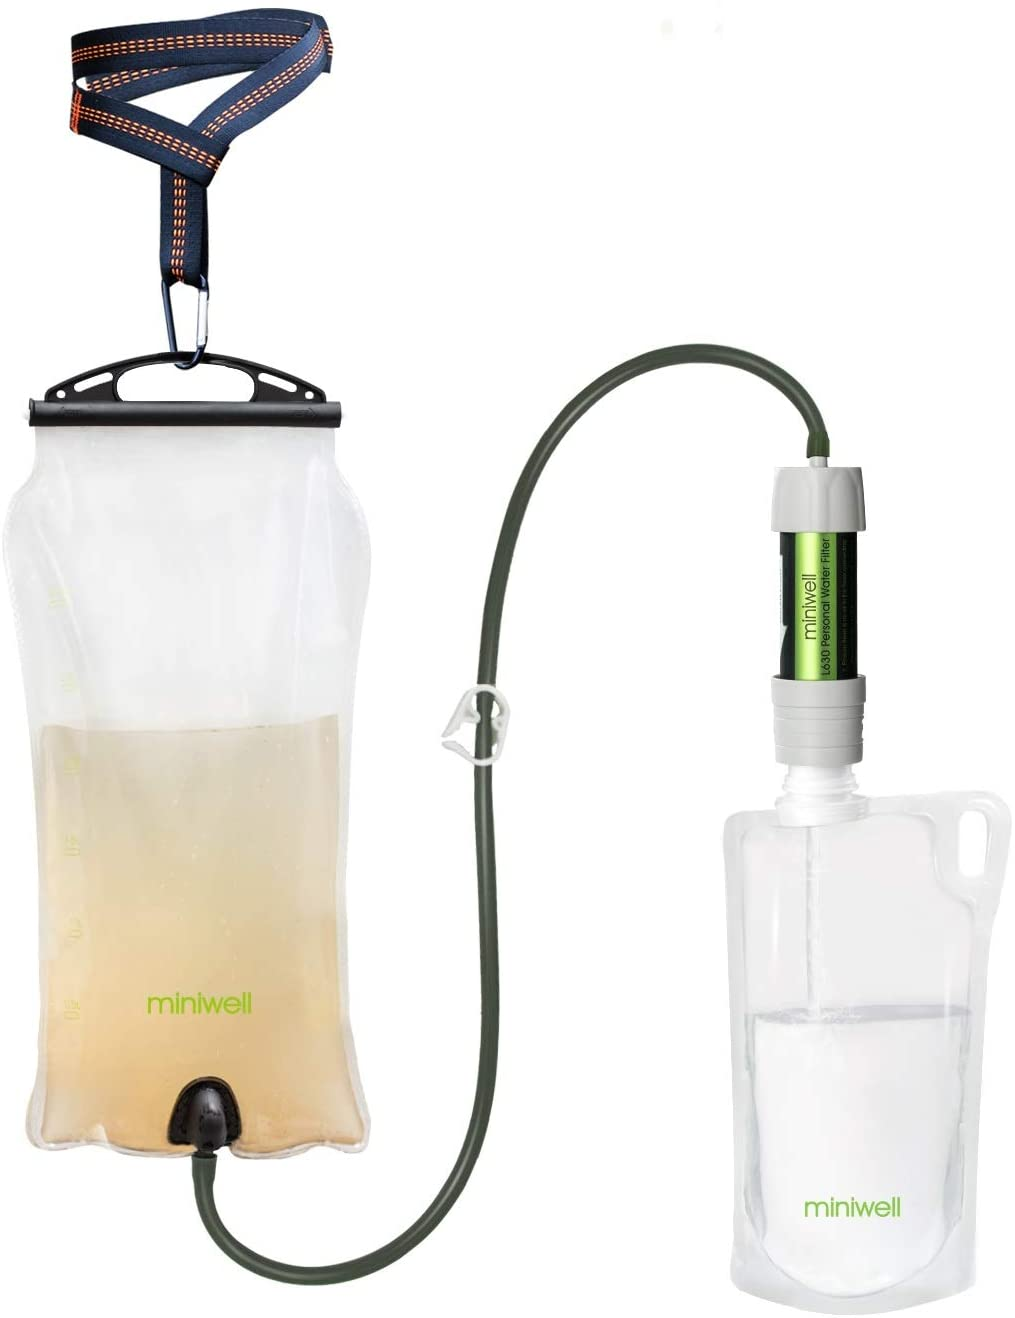 miniwell Gravity Water Filter Straw Ultralight Versatile Hiker Water Filter Optional Accessories. TUV Proven Emergency Kit Hurricane Storm Supplies.